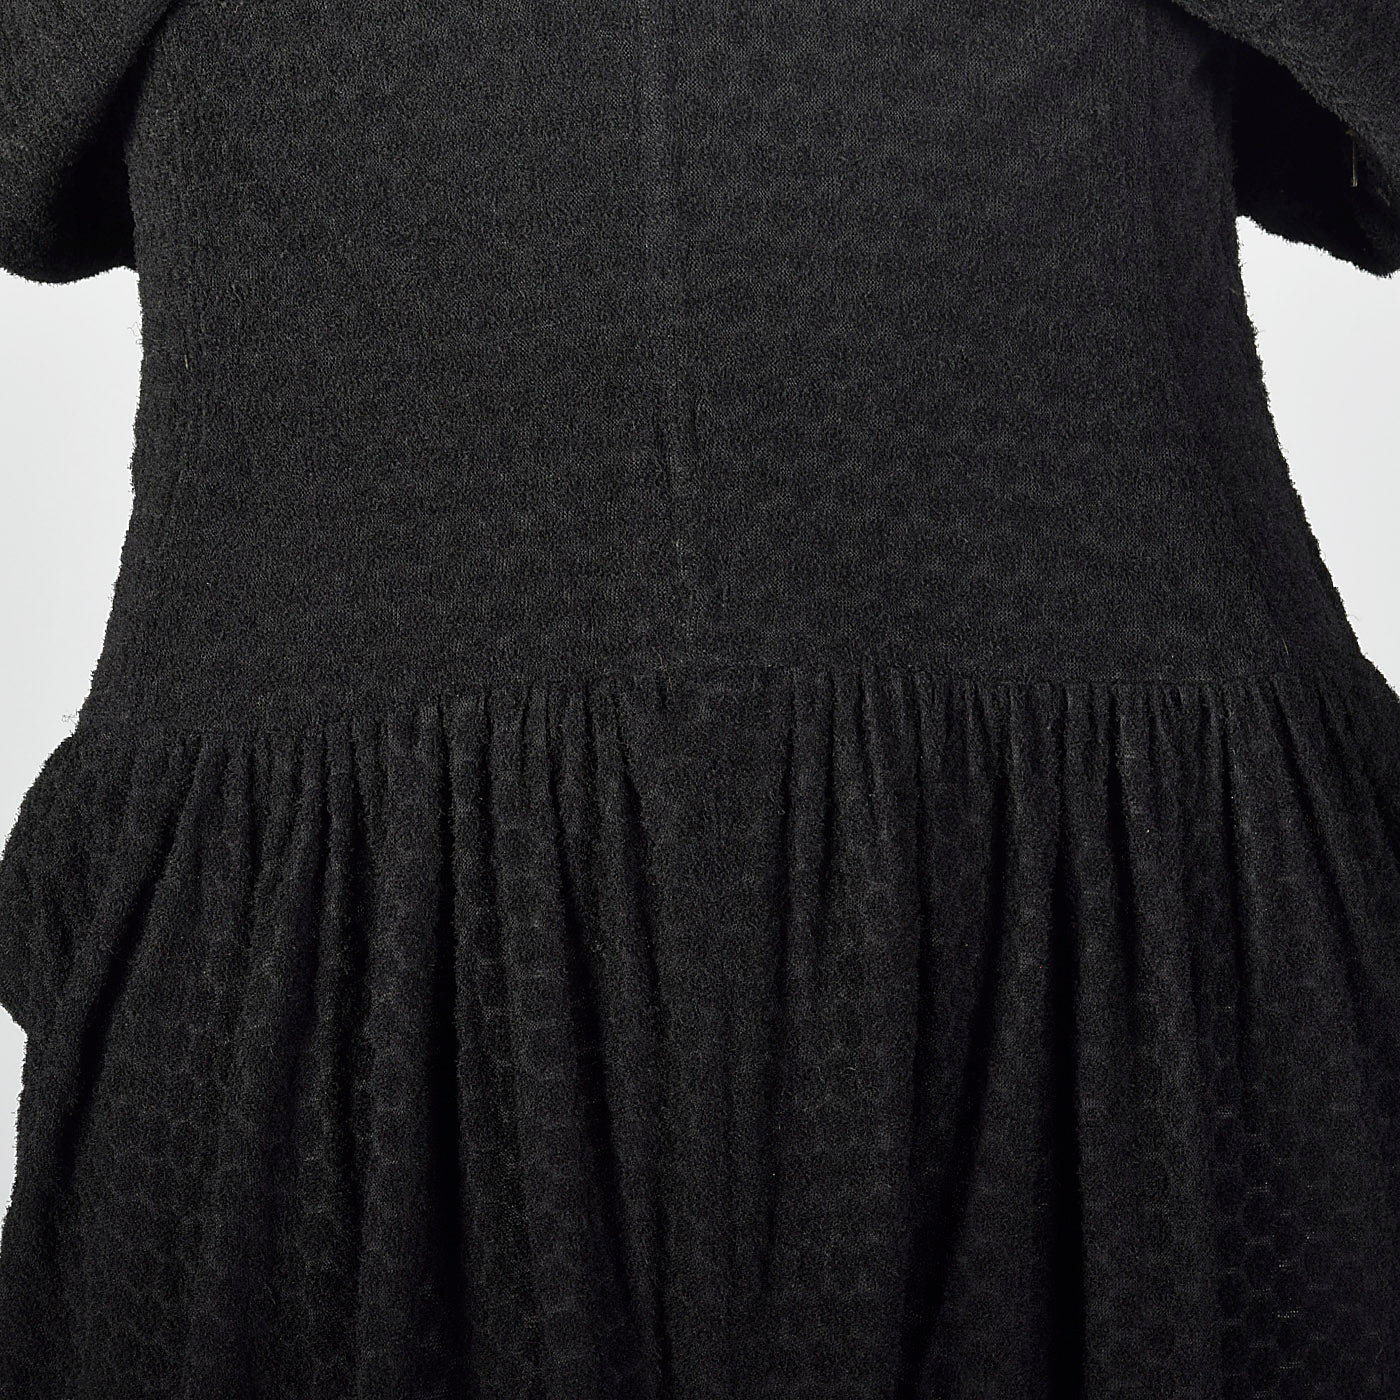 1950s Black Dolman Sleeve Dress with Unique Texture